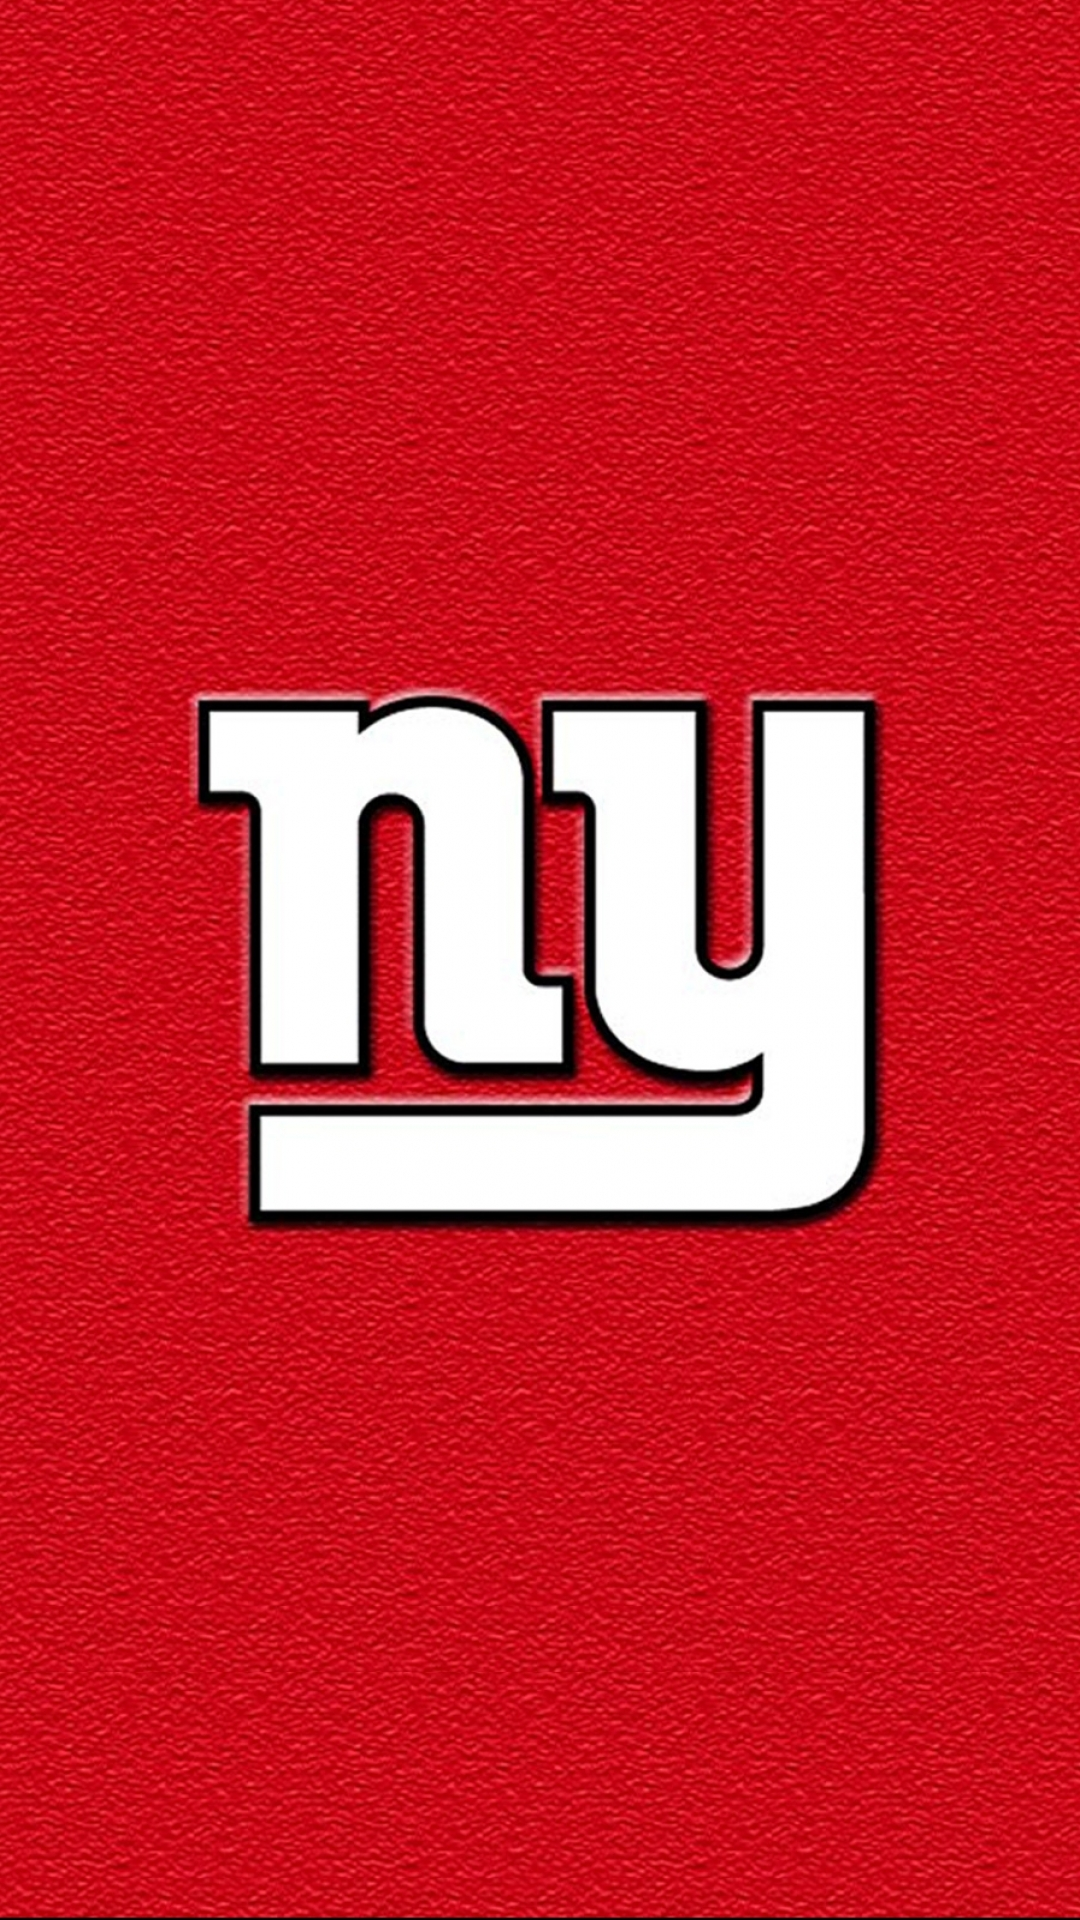 NFL - New York Giants iPhone 5 / SE Wallpaper